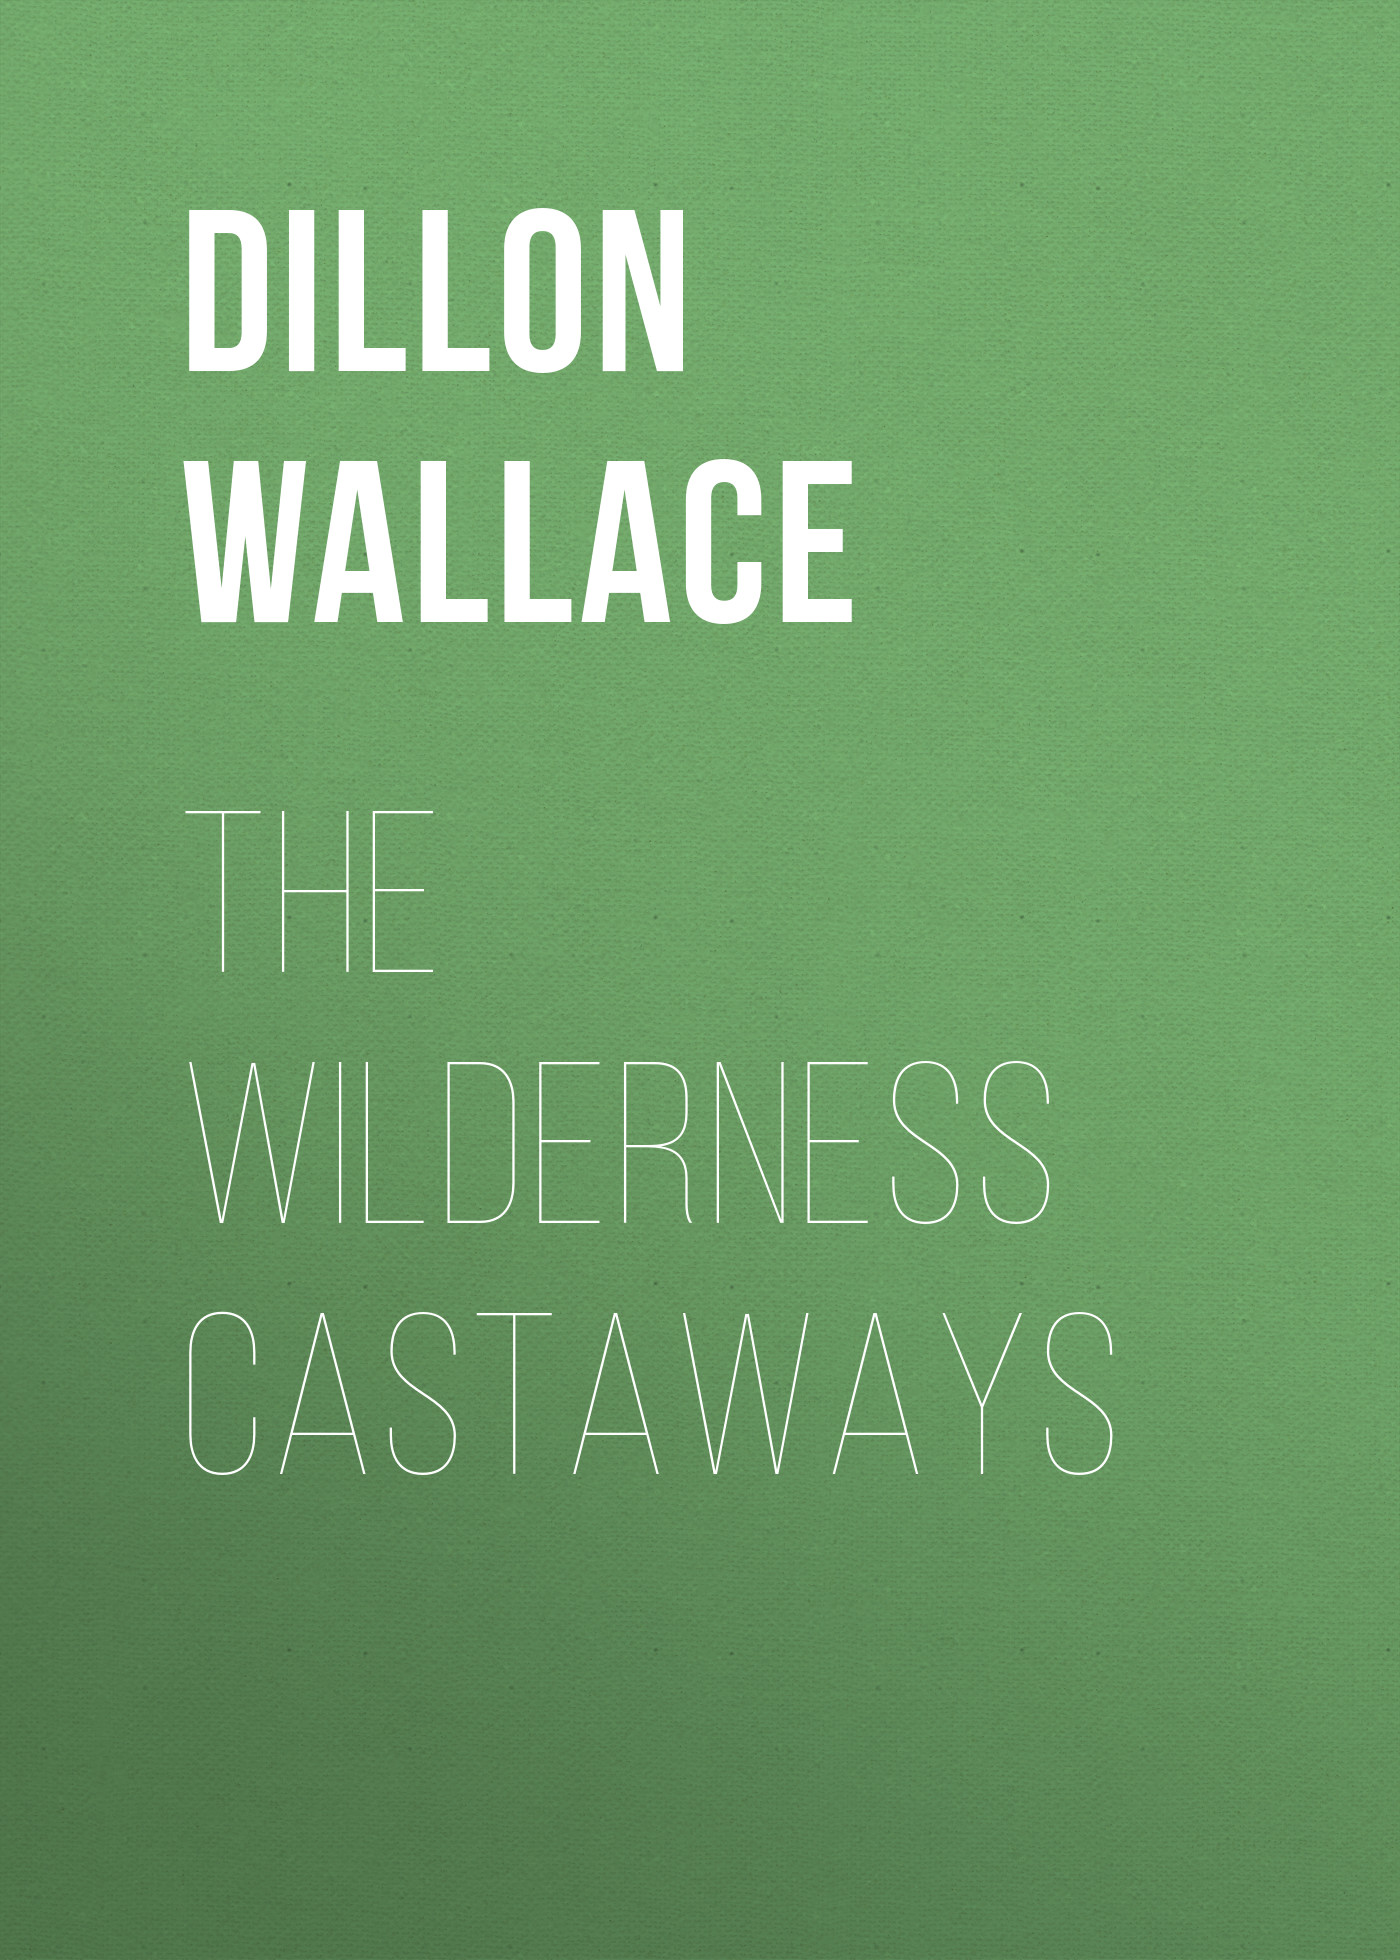 Dillon Wallace The Wilderness Castaways зрительная труба meade wilderness 15–45x65